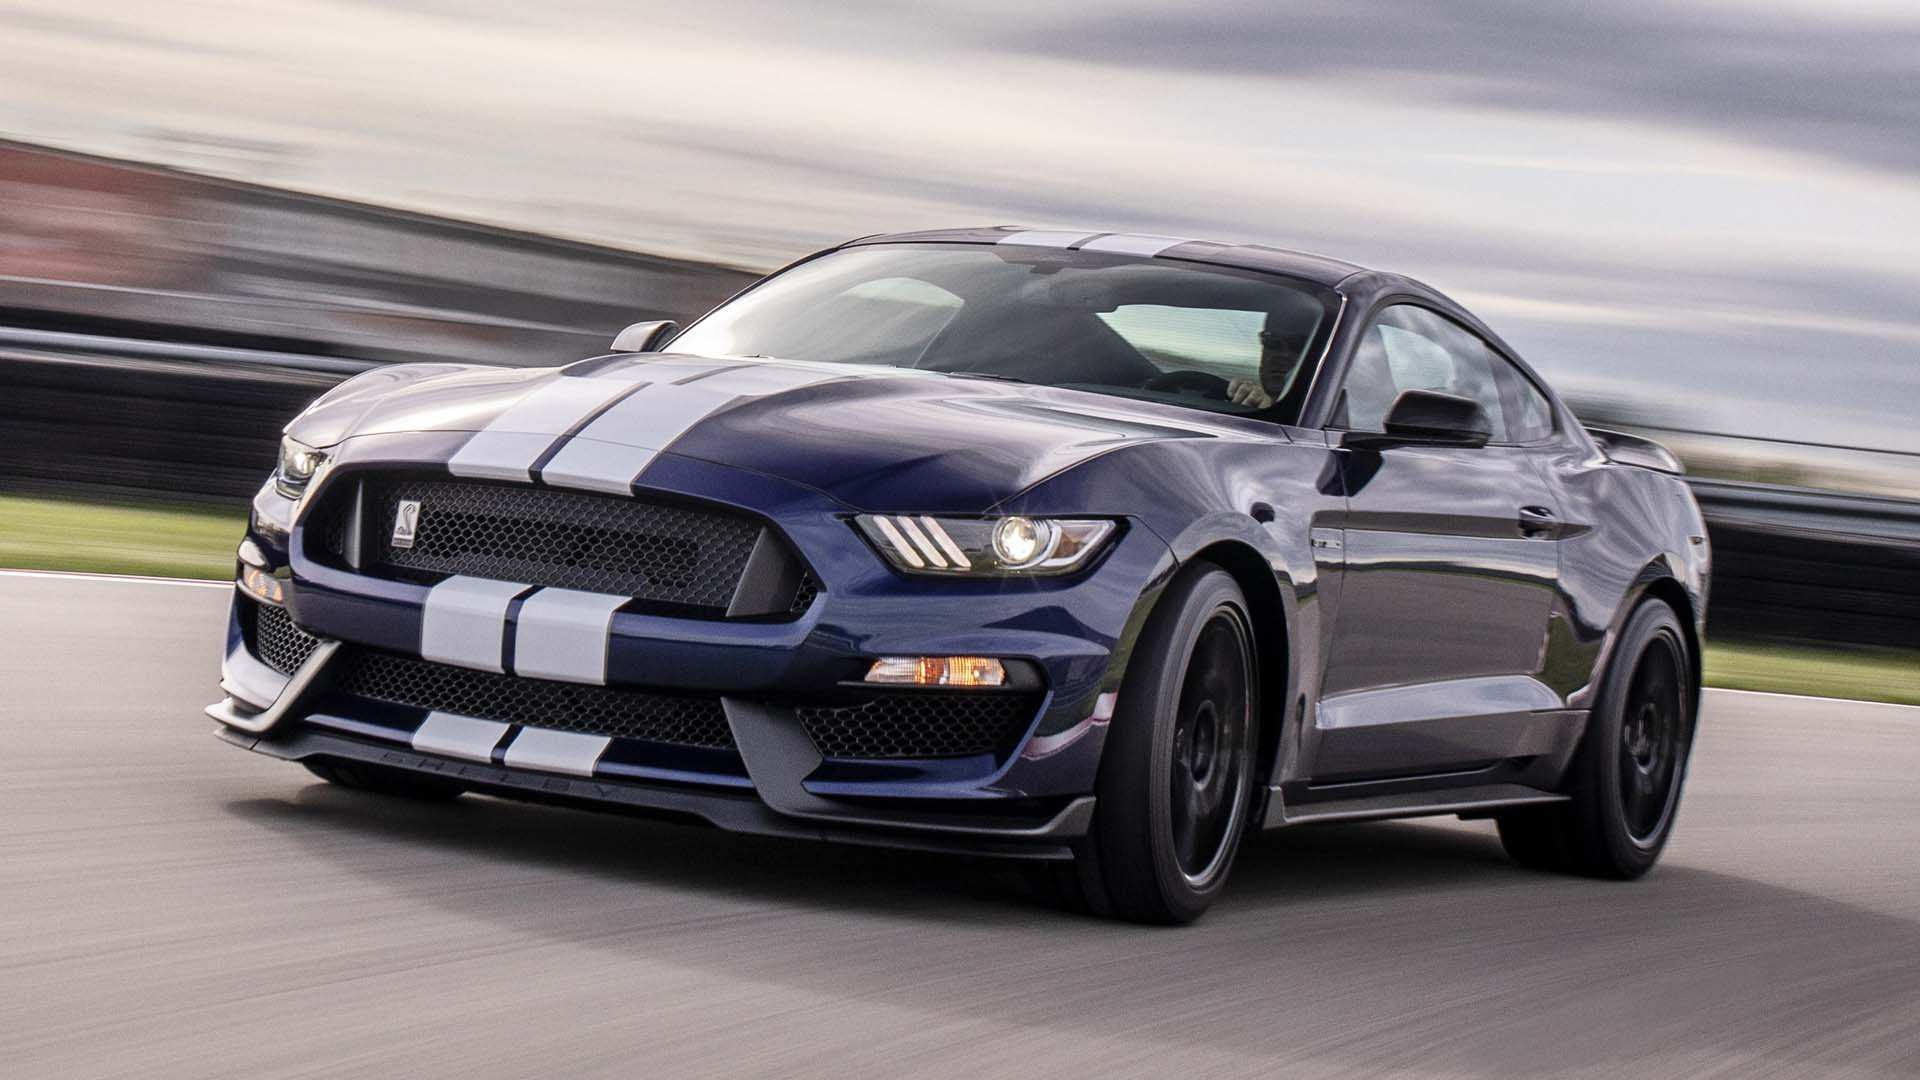 59 New 2020 Ford Mustang Shelby Gt 350 Price And Release Date